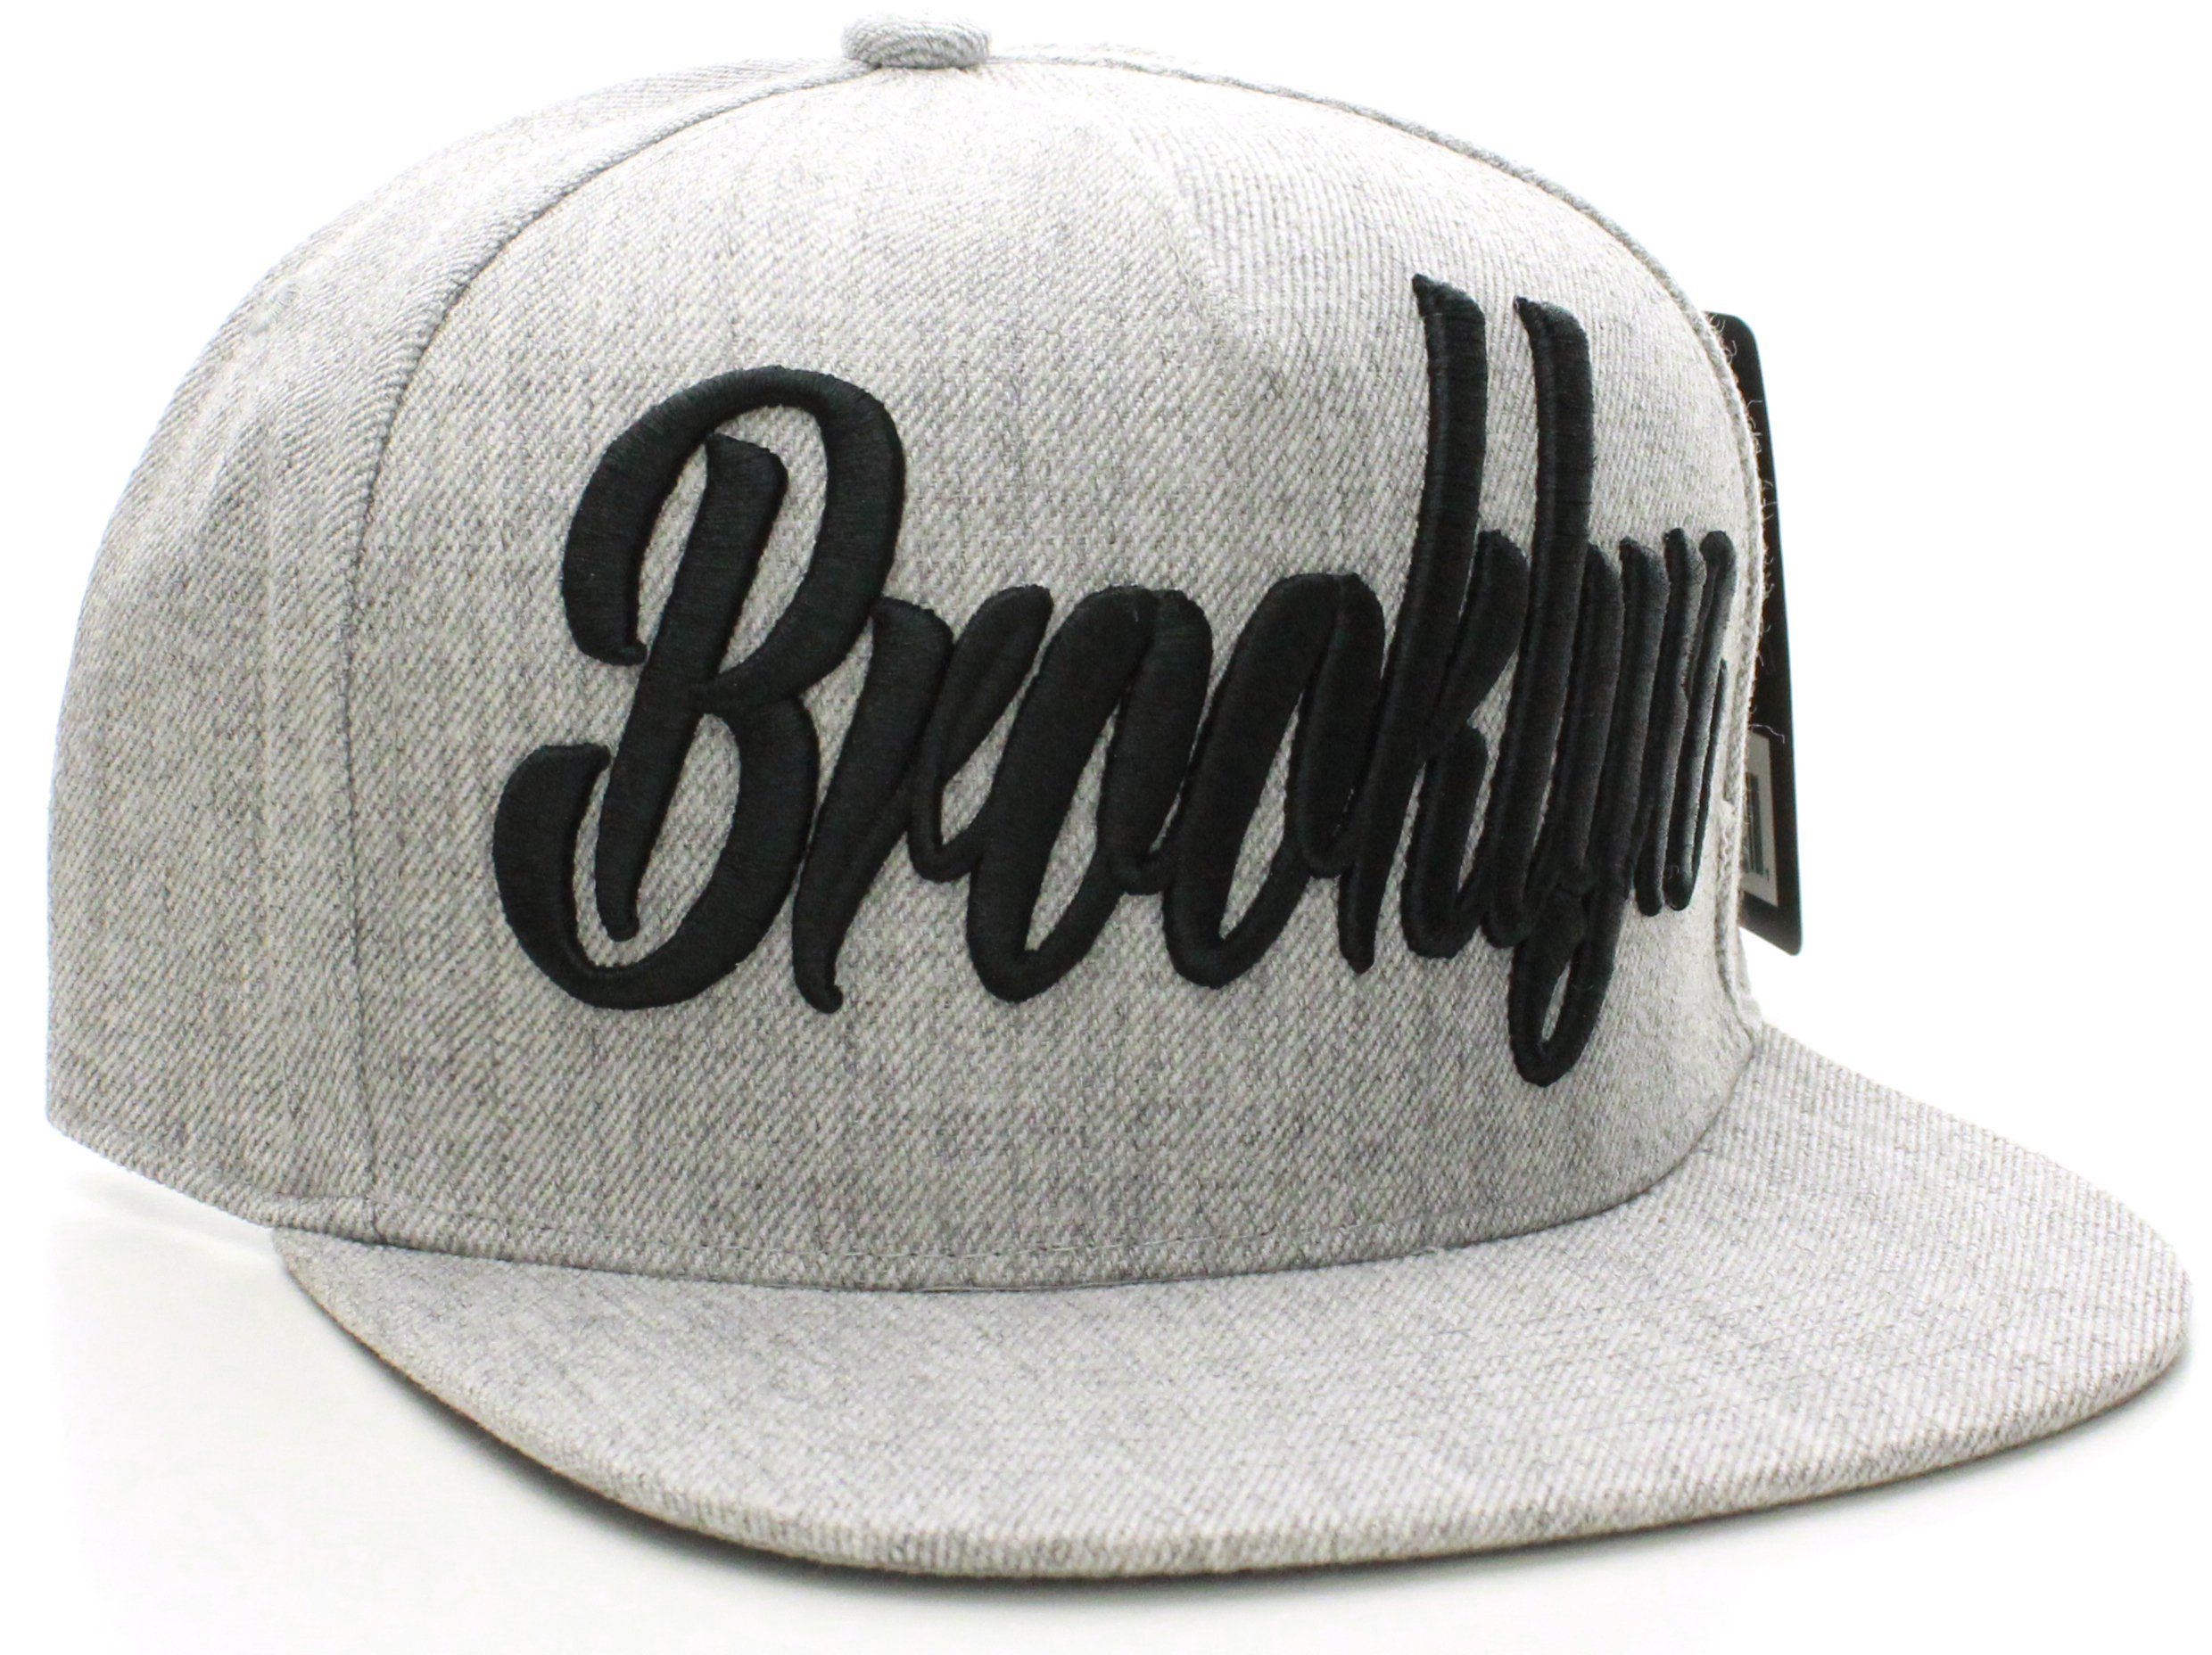 53210716b Absolute Snapback Brooklyn Script Flat Bill Snap Back Cap Hat ...